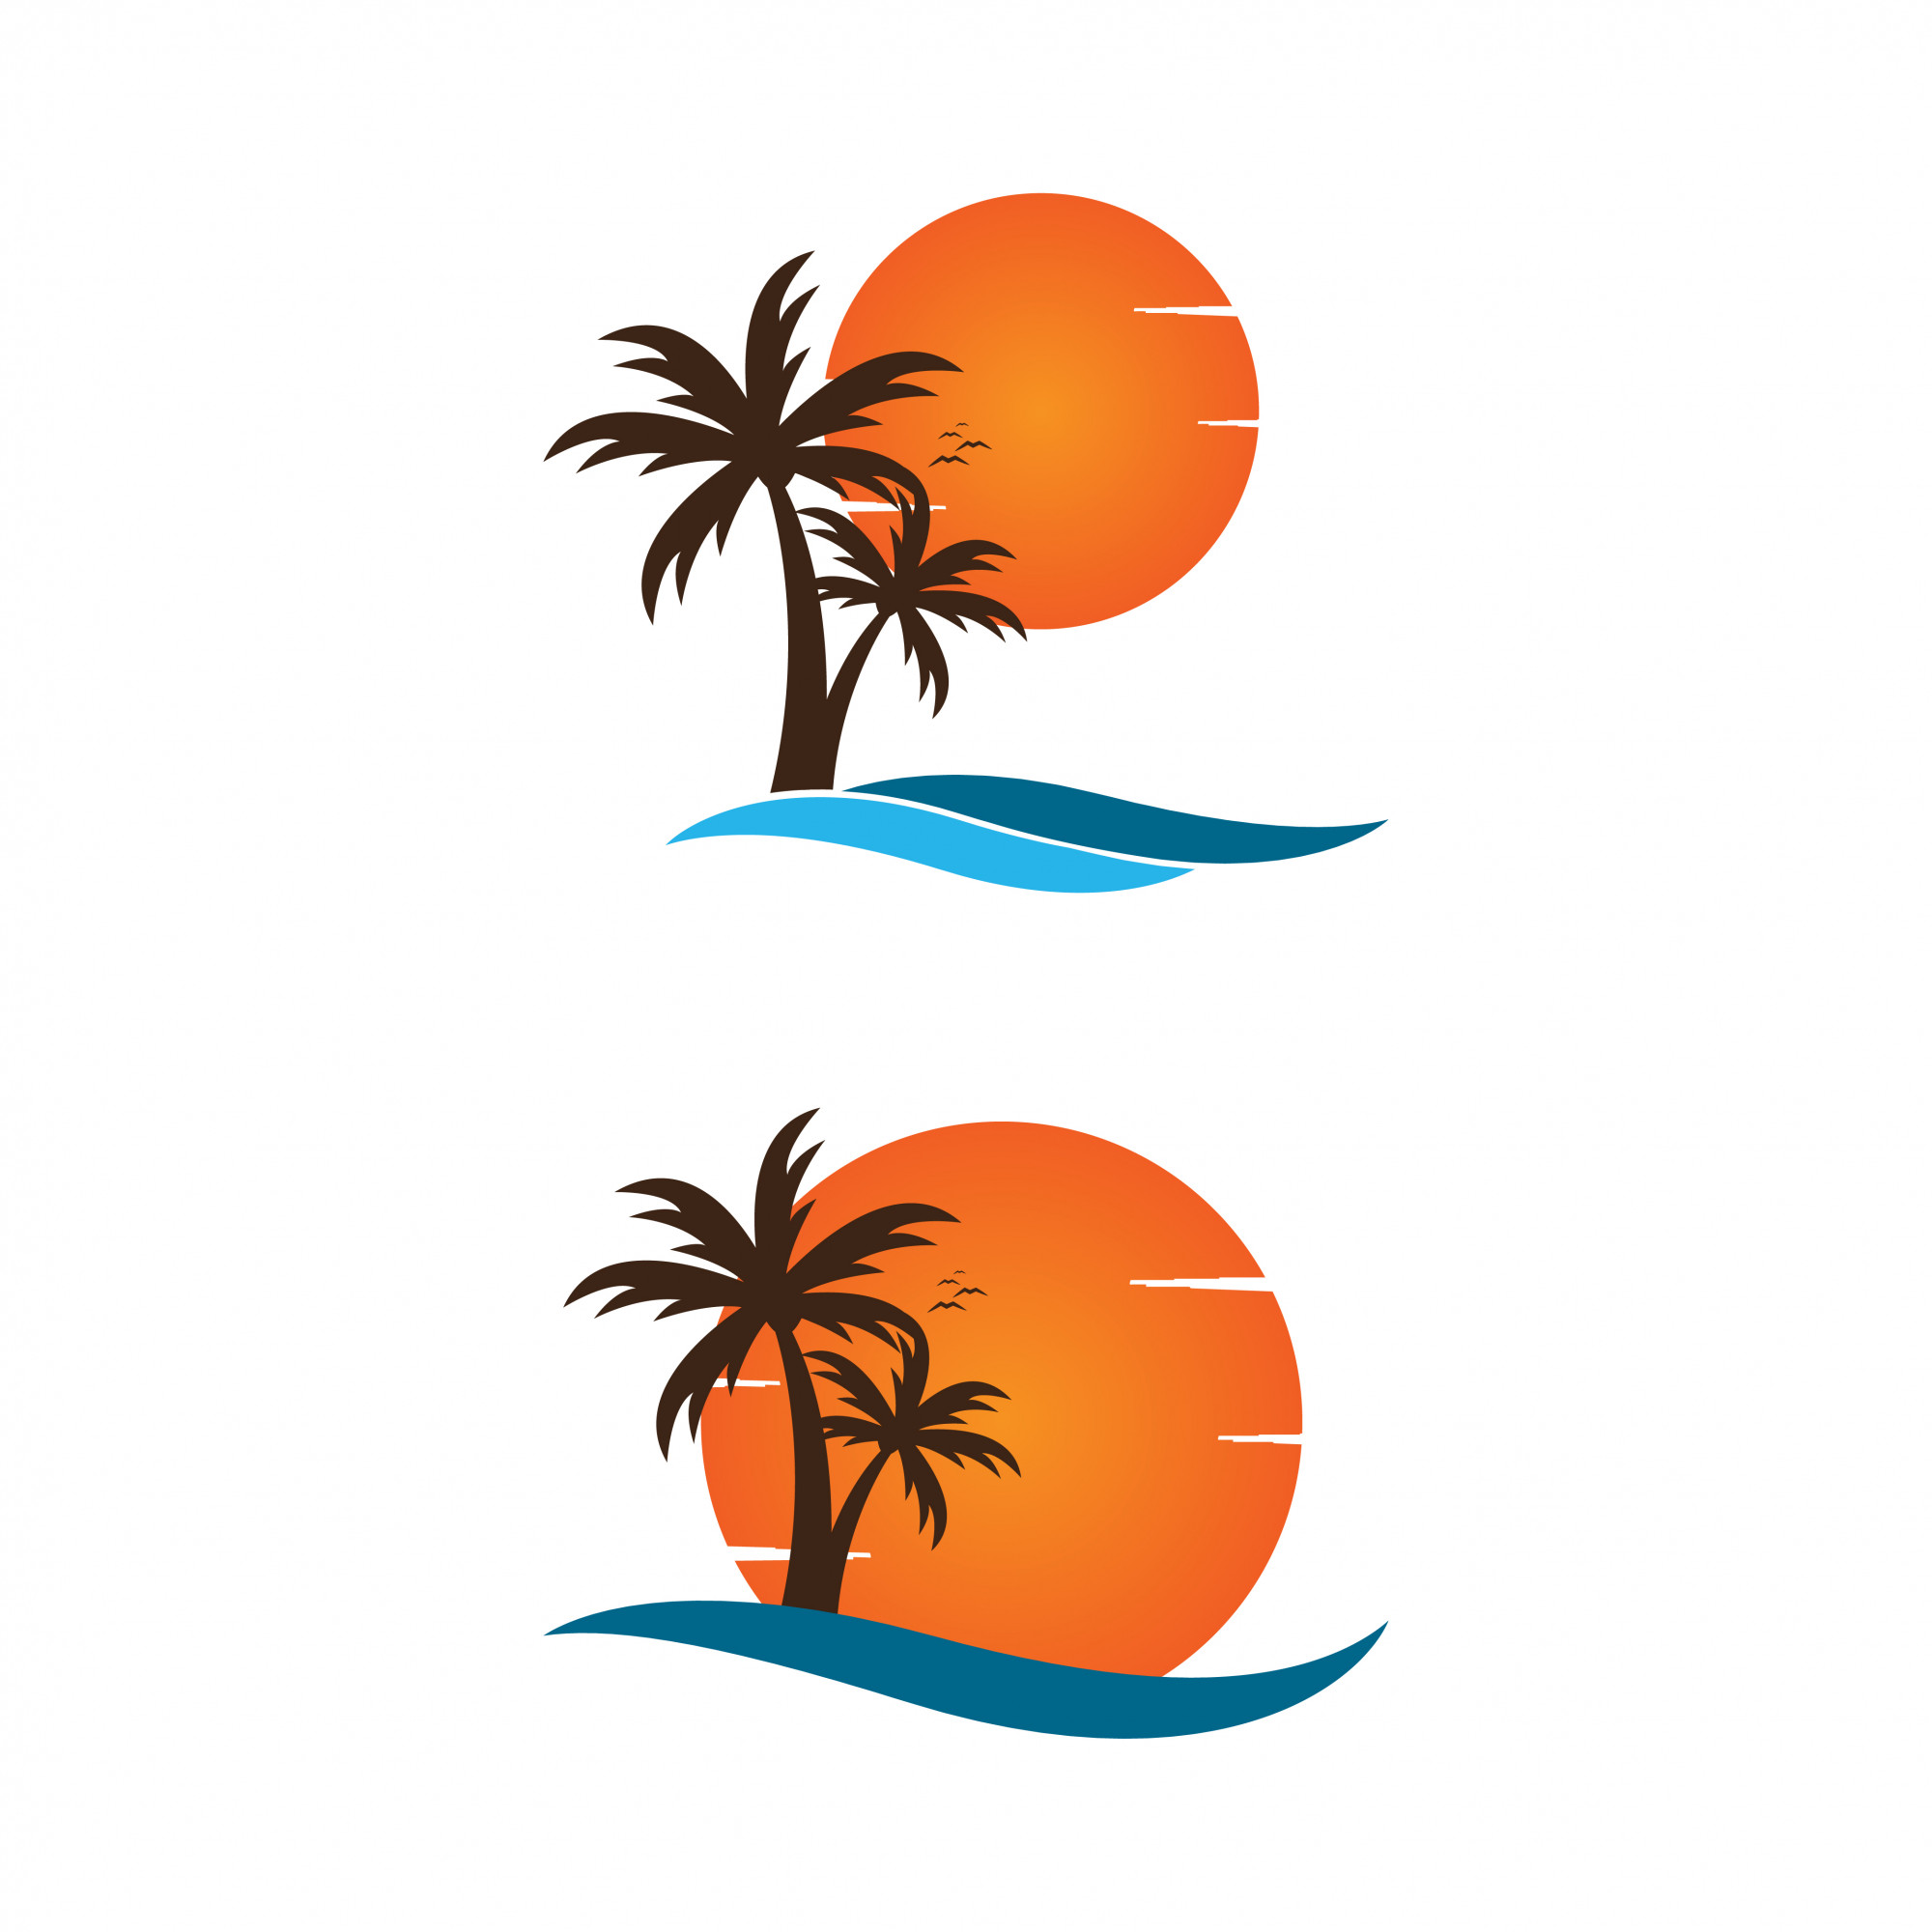 Palm tree on a beach logo graphic design template